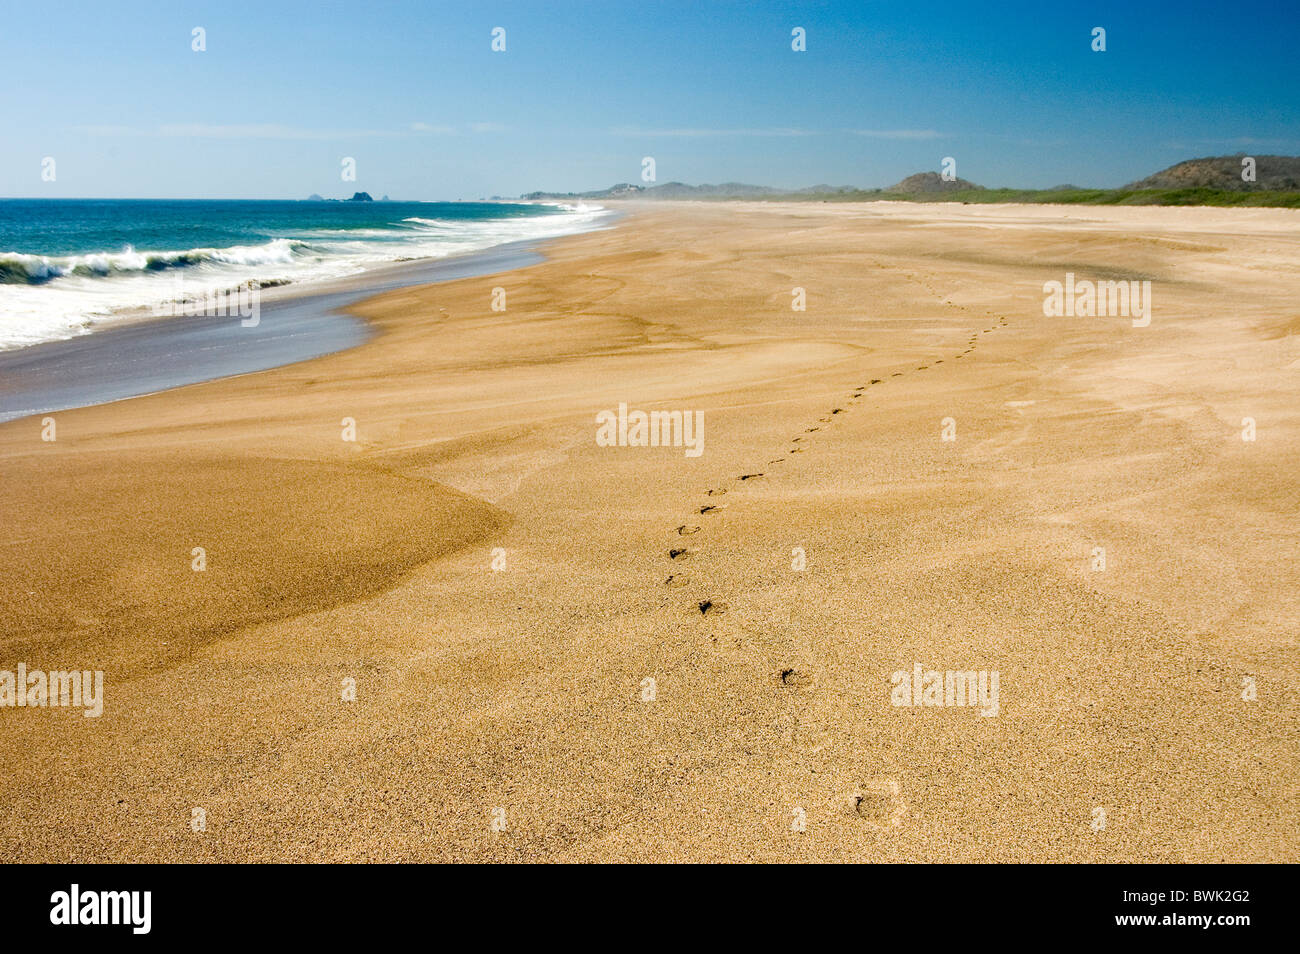 Footprints On Beach Sea Coast Landscape Tenacatita Jalisco Mexico Central America